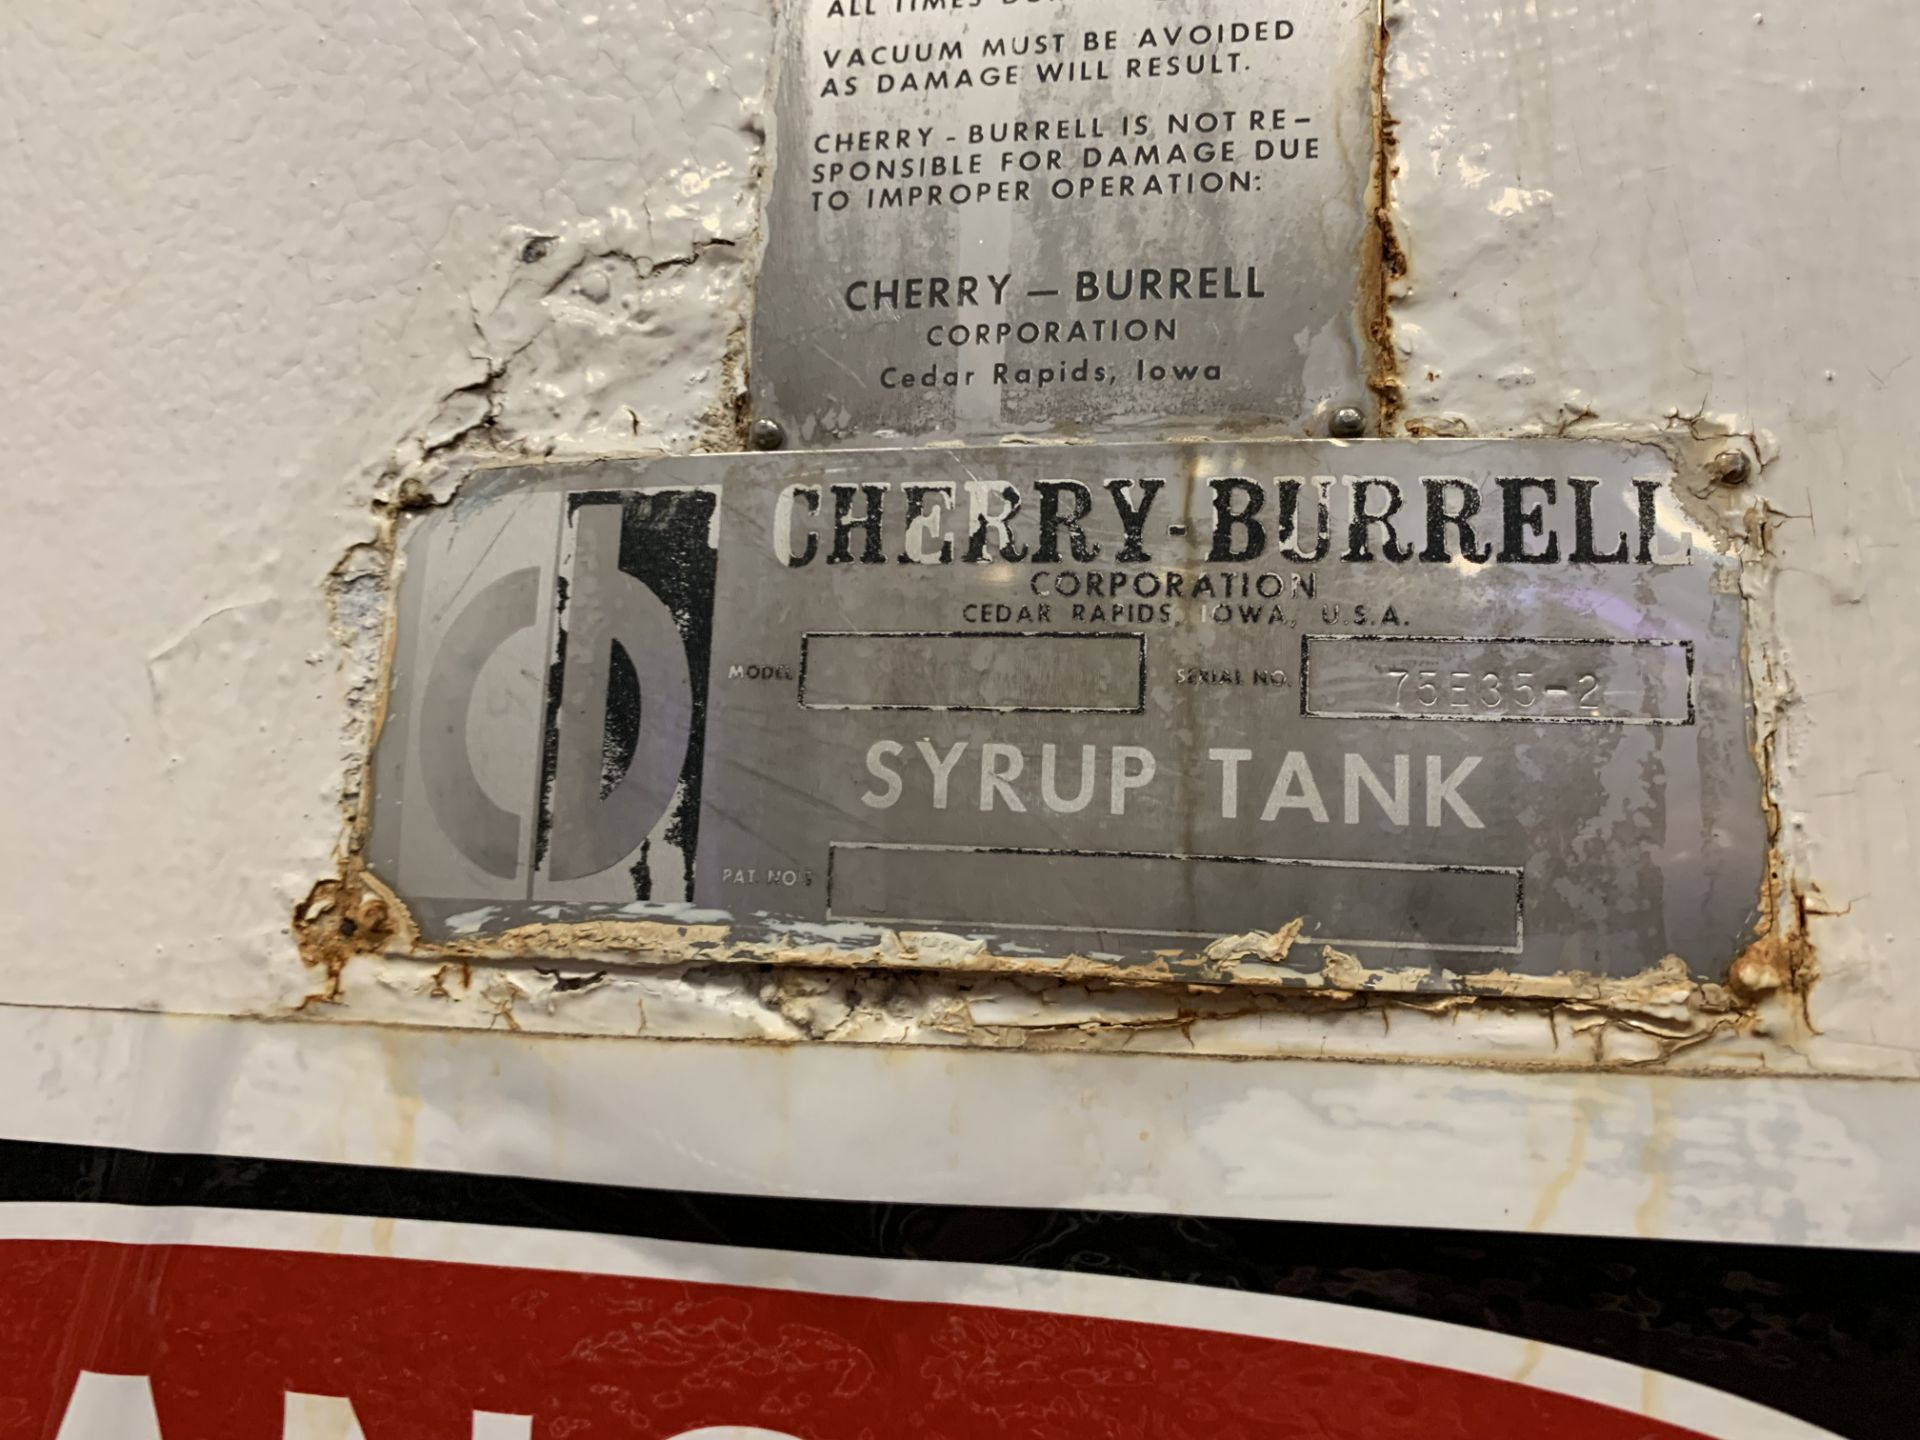 5000 Gallon Horizontal Stainless Steel Jacketed Tank - Image 2 of 3